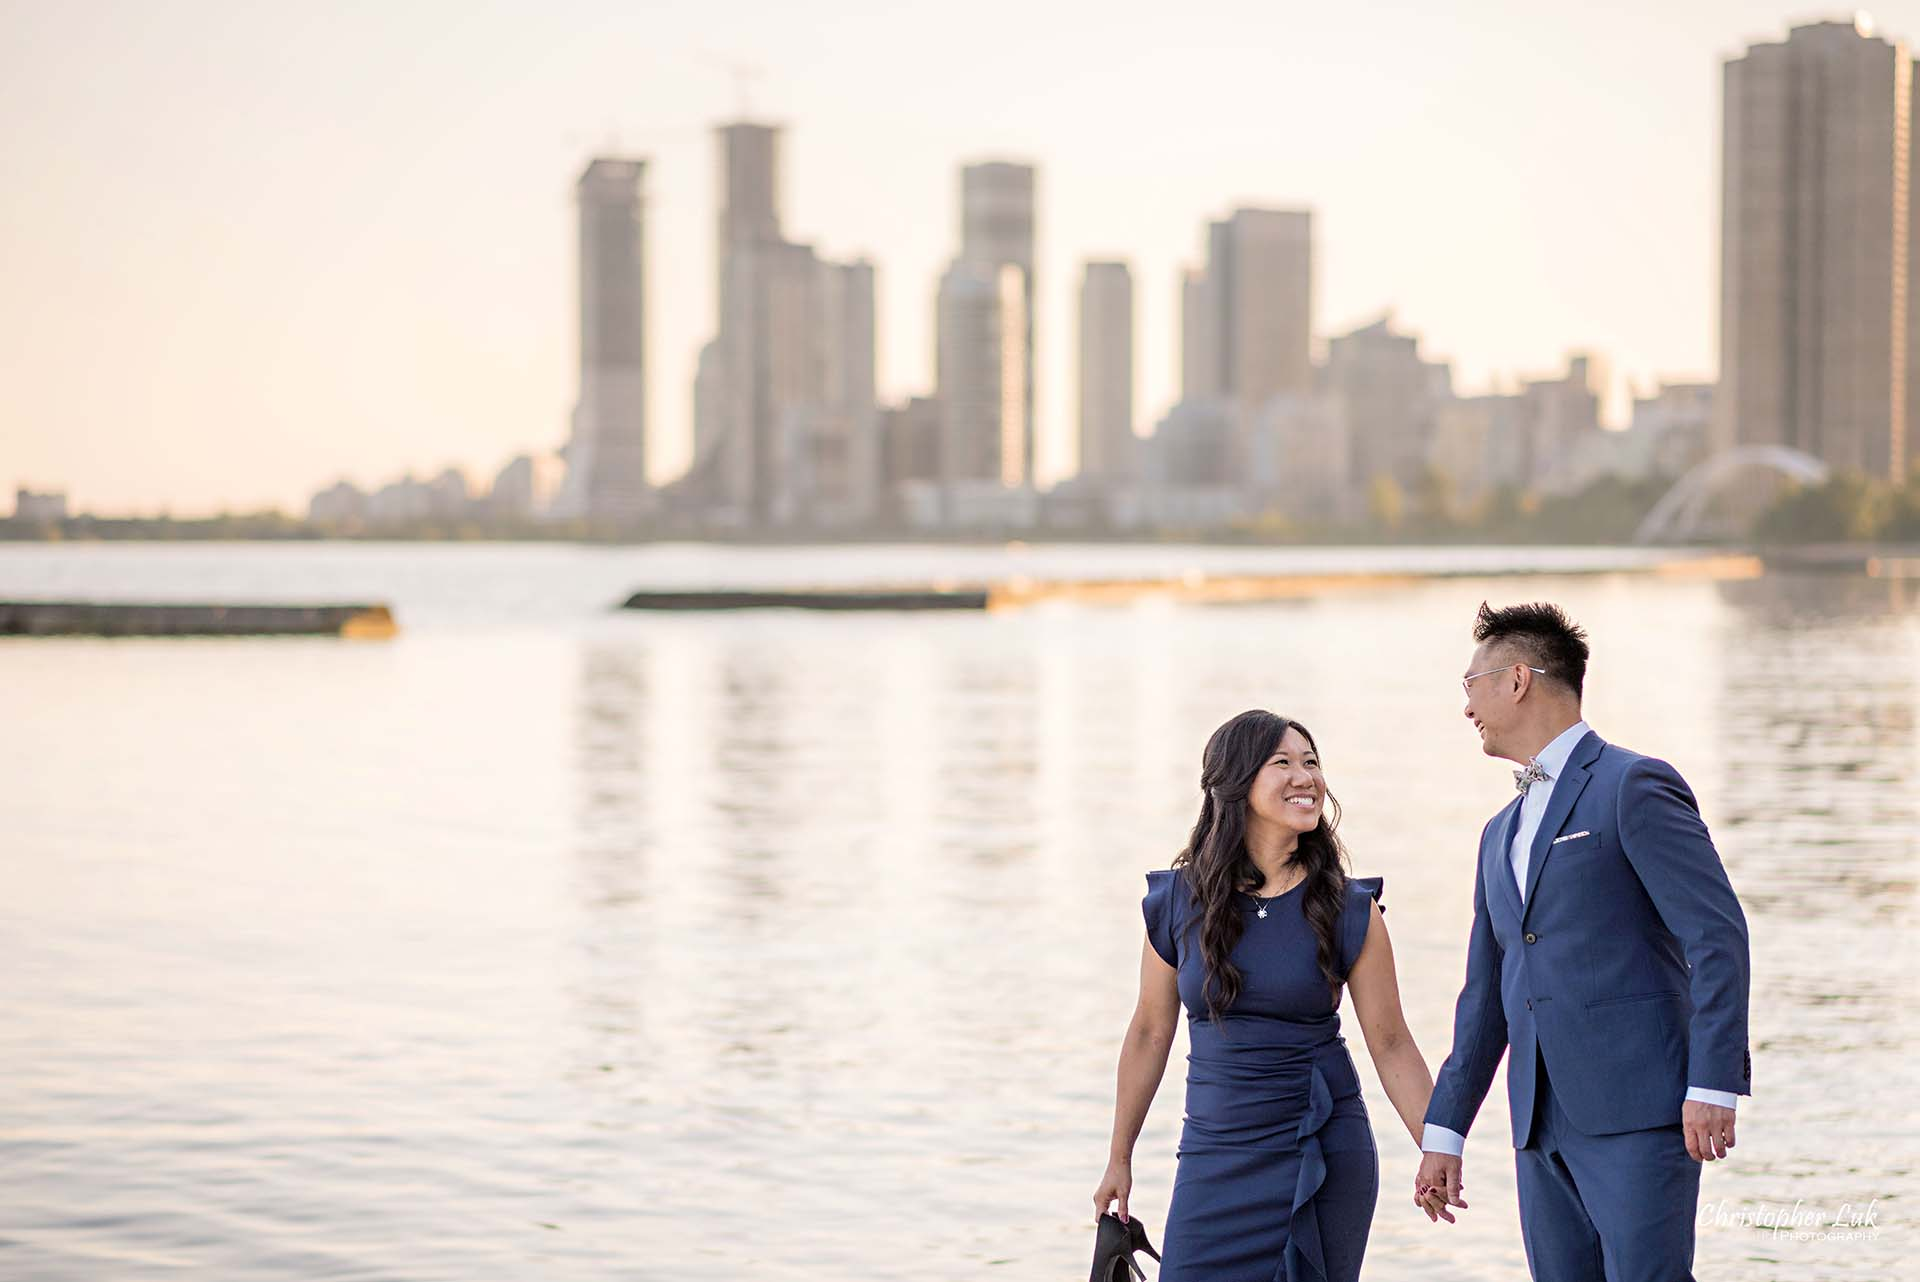 Christopher Luk Toronto Wedding Photographer - Engagement Photography - Sunnyside Pavilion Park Beach Boardwalk Toronto - Bride and Groom Natural Candid Photojournalistic Humber Bay Archway Arch Bridge Skyline Walking Smile Edge